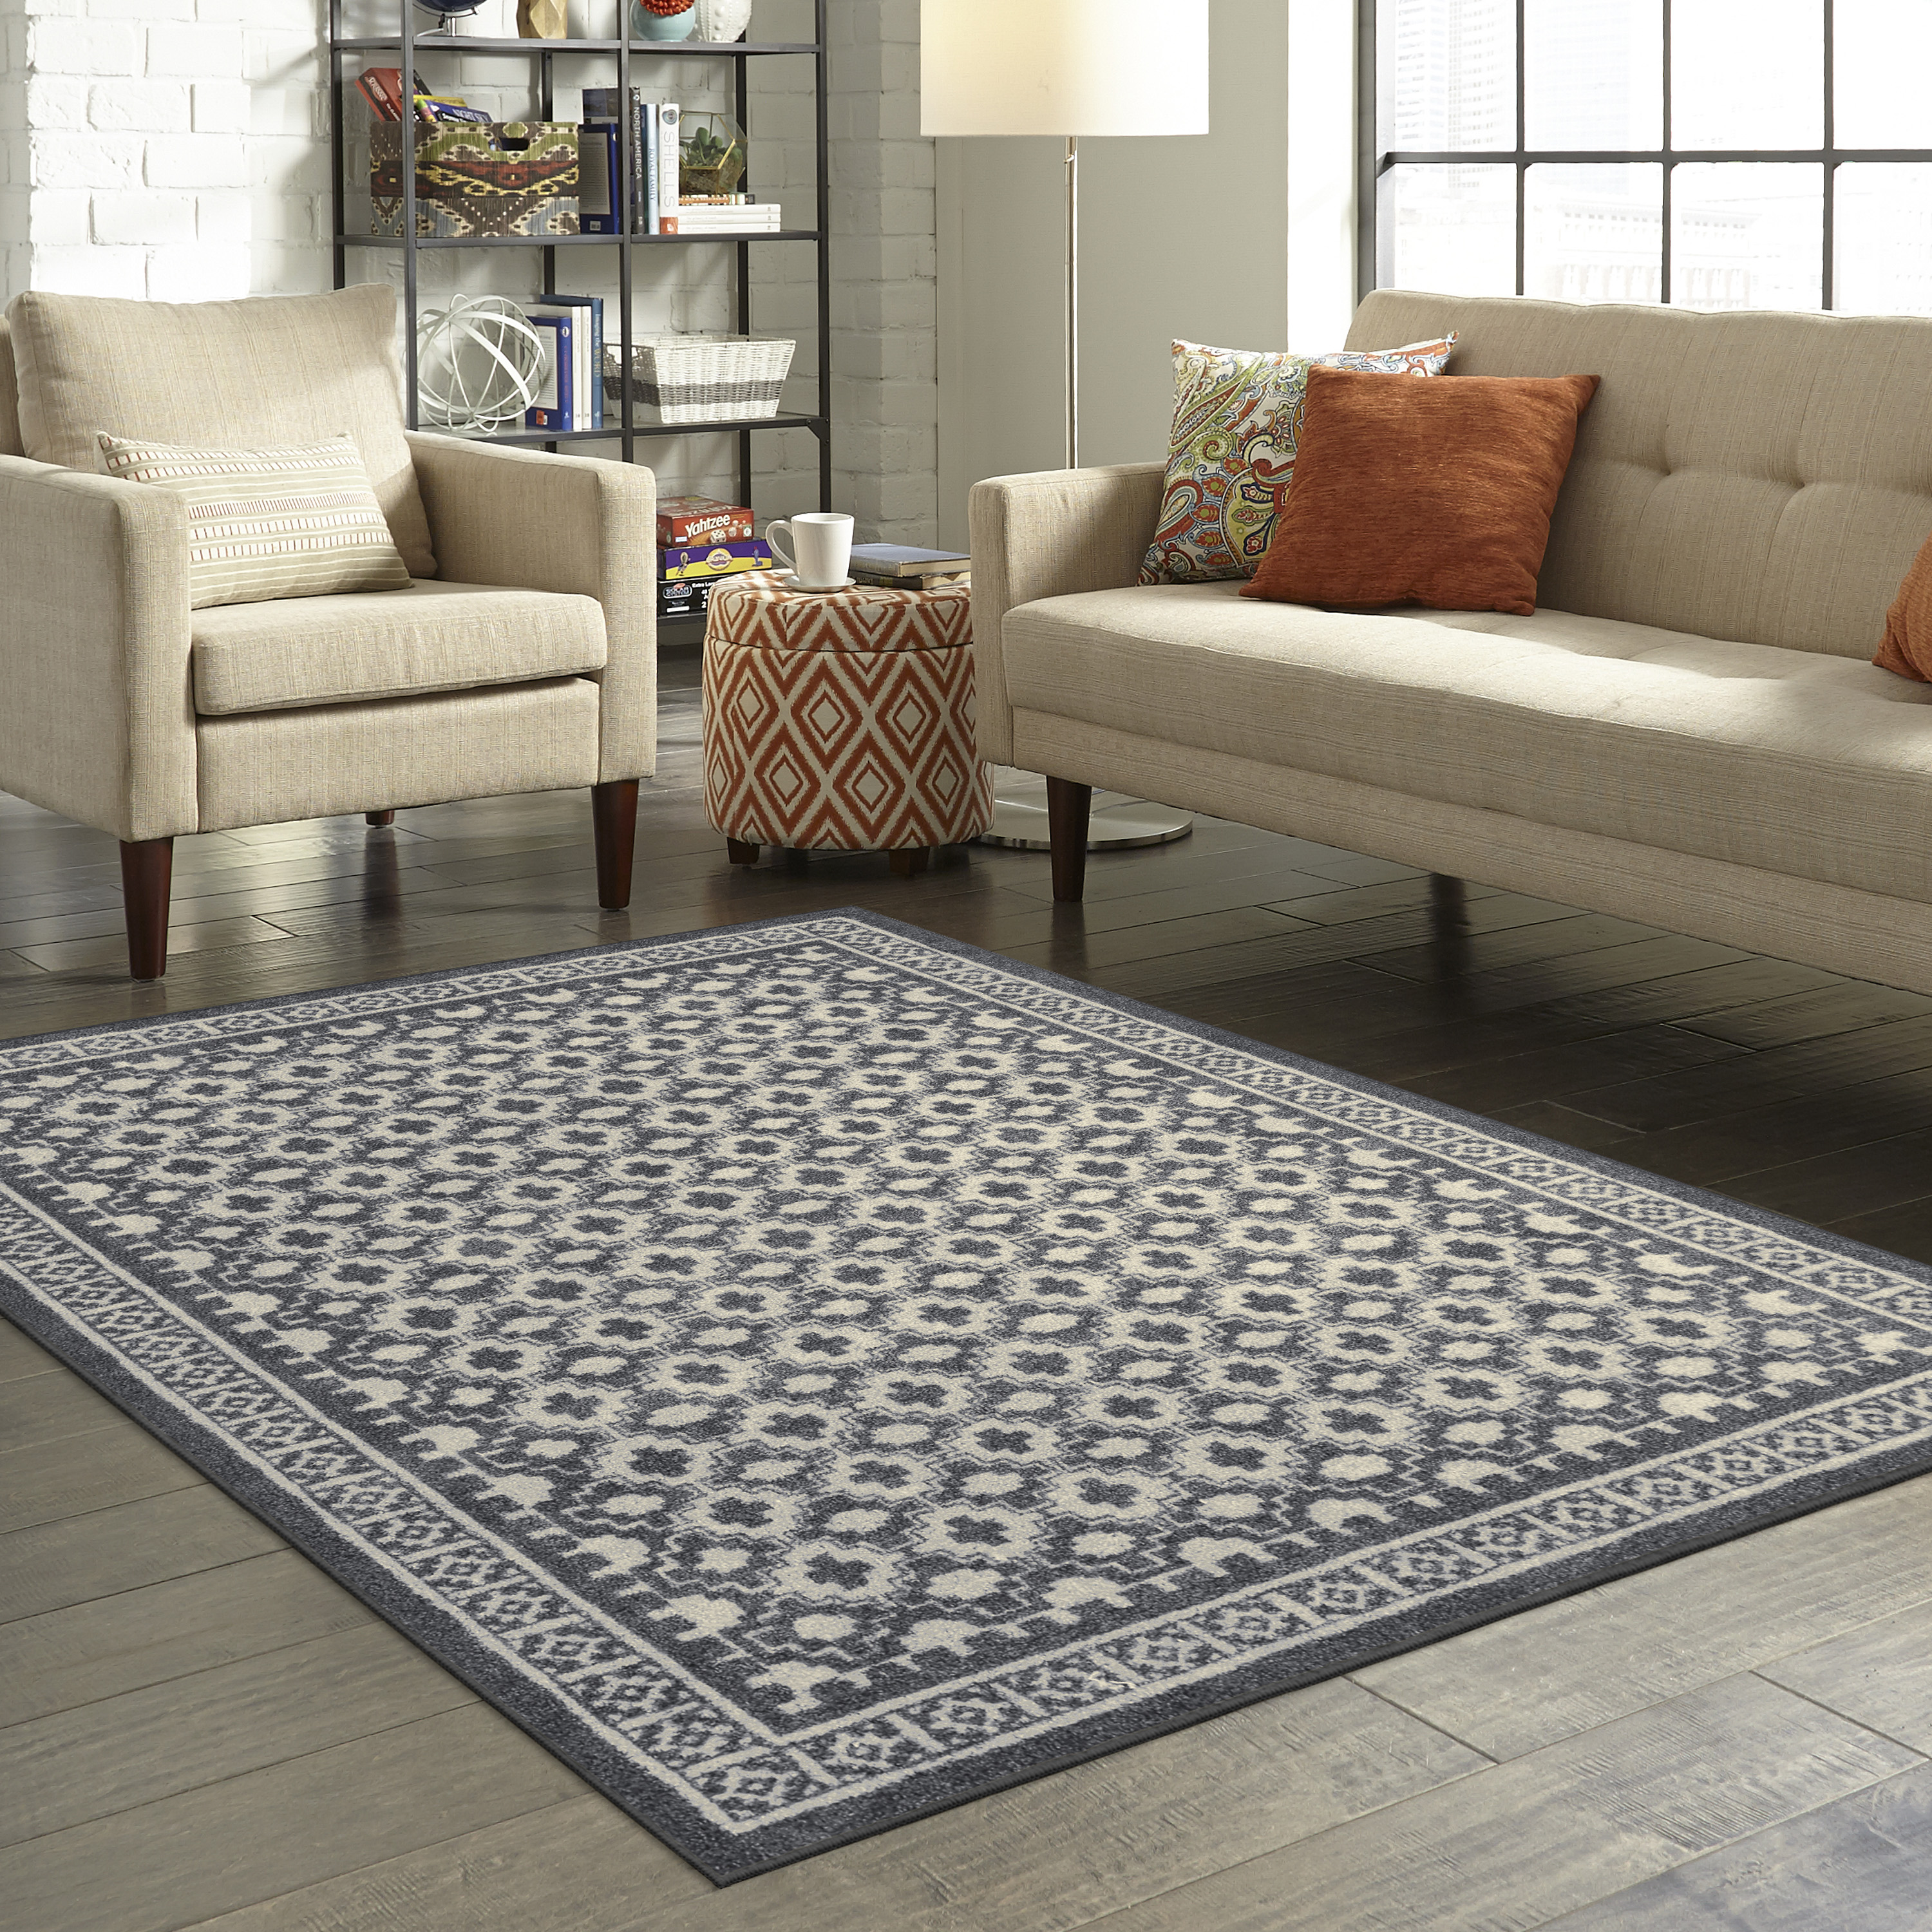 Mainstays Farmhouse Textured Print Area Rug or Runner